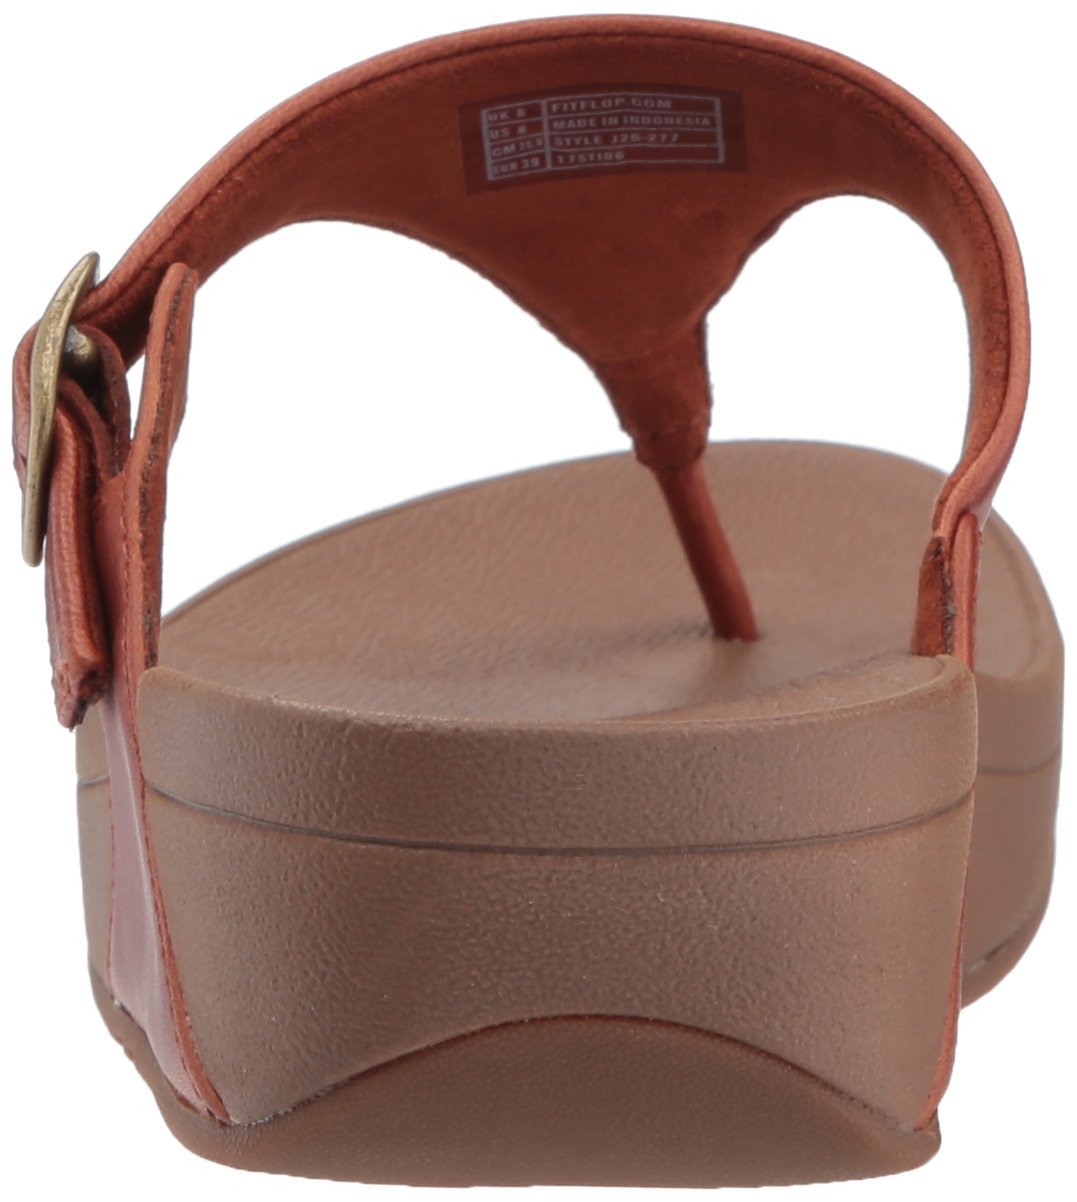 FitFlop Women's The Skinny Leather Toe-Thong Sandal, Dark Tan, 10 M US by FitFlop (Image #2)